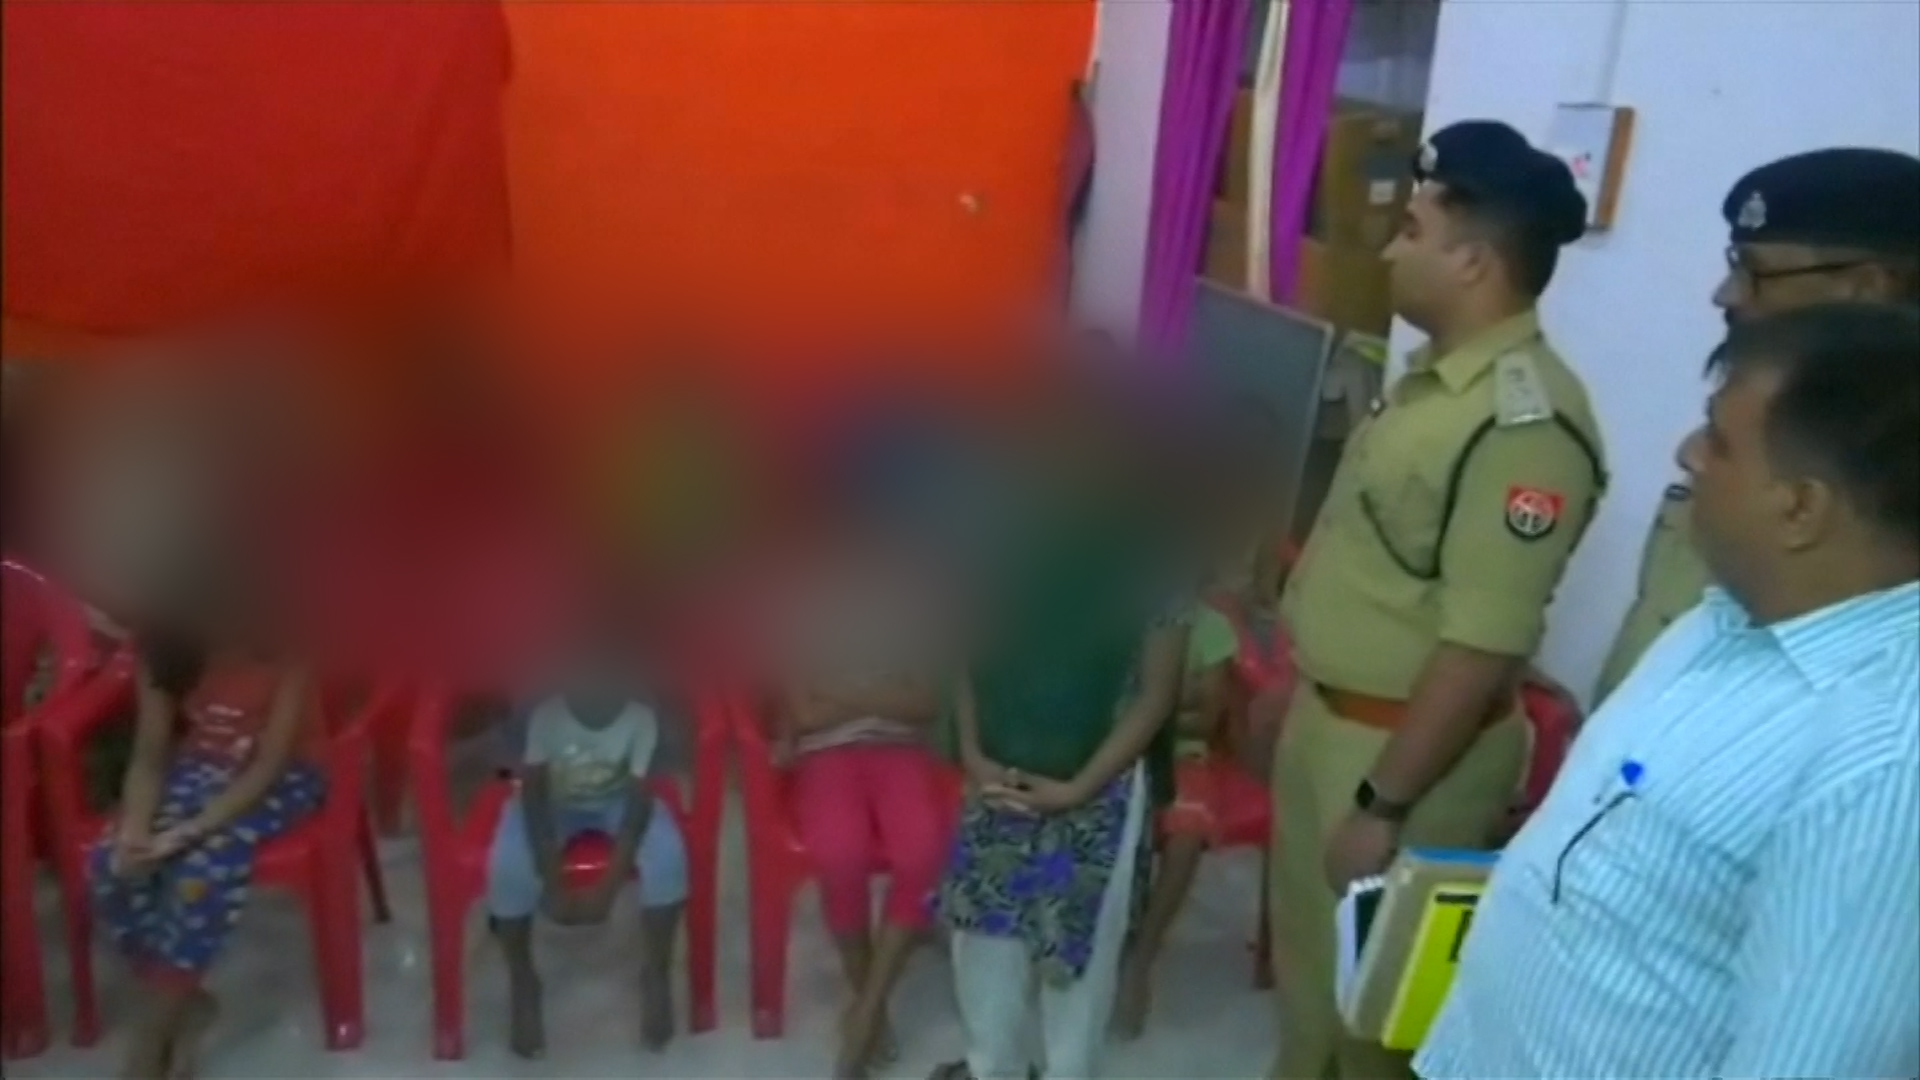 Indian police rescue 24 girls after they say they were forced into the sex trade